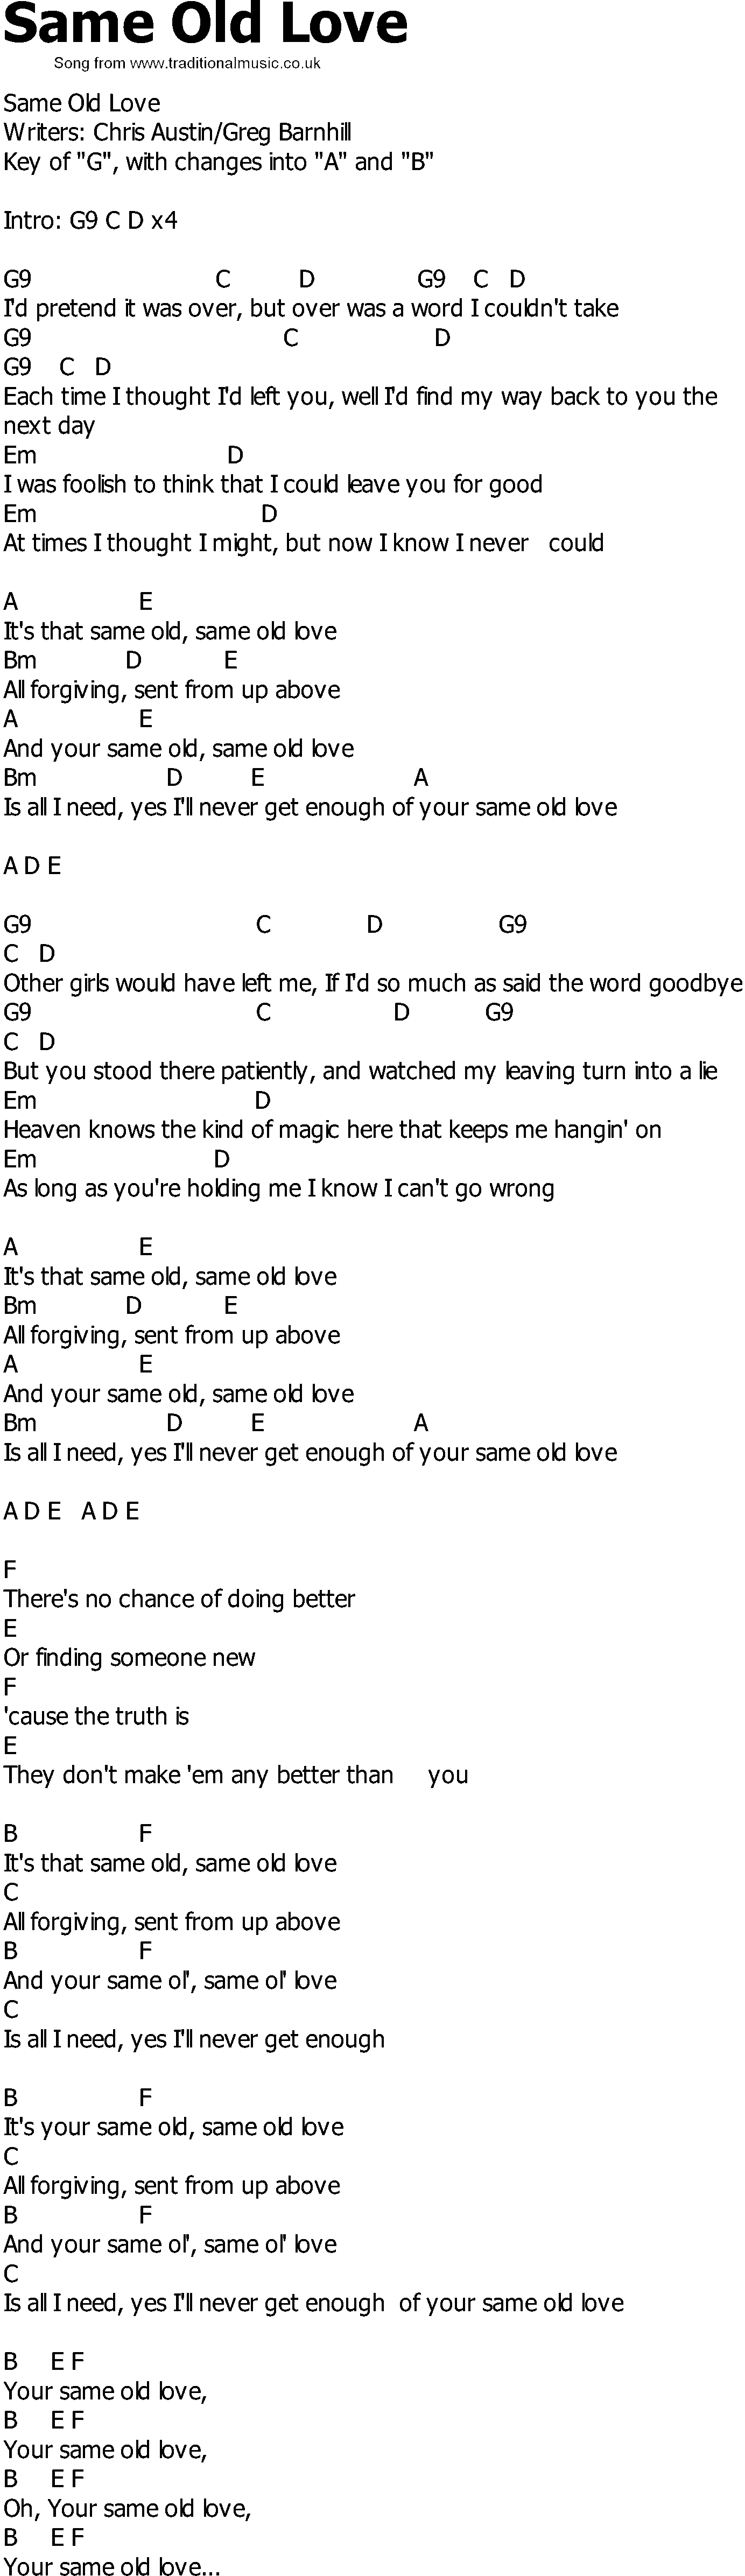 Old Country song lyrics with chords   Same Old Love